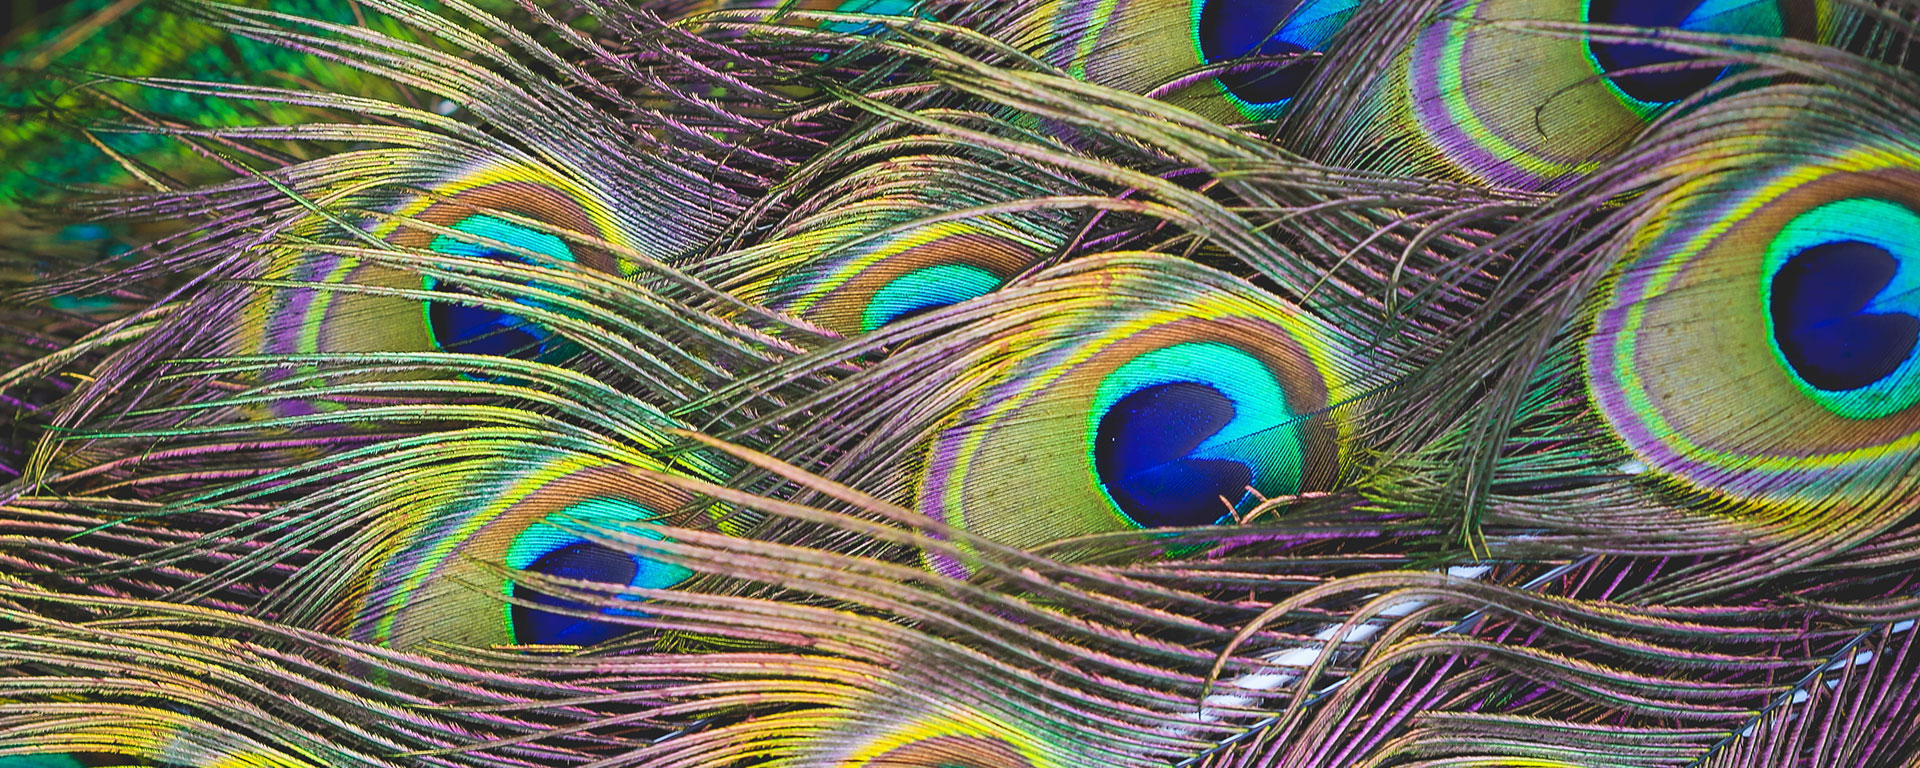 colorful-peacock-feathers-PJ-HNCK6973-dc.org-1920x768